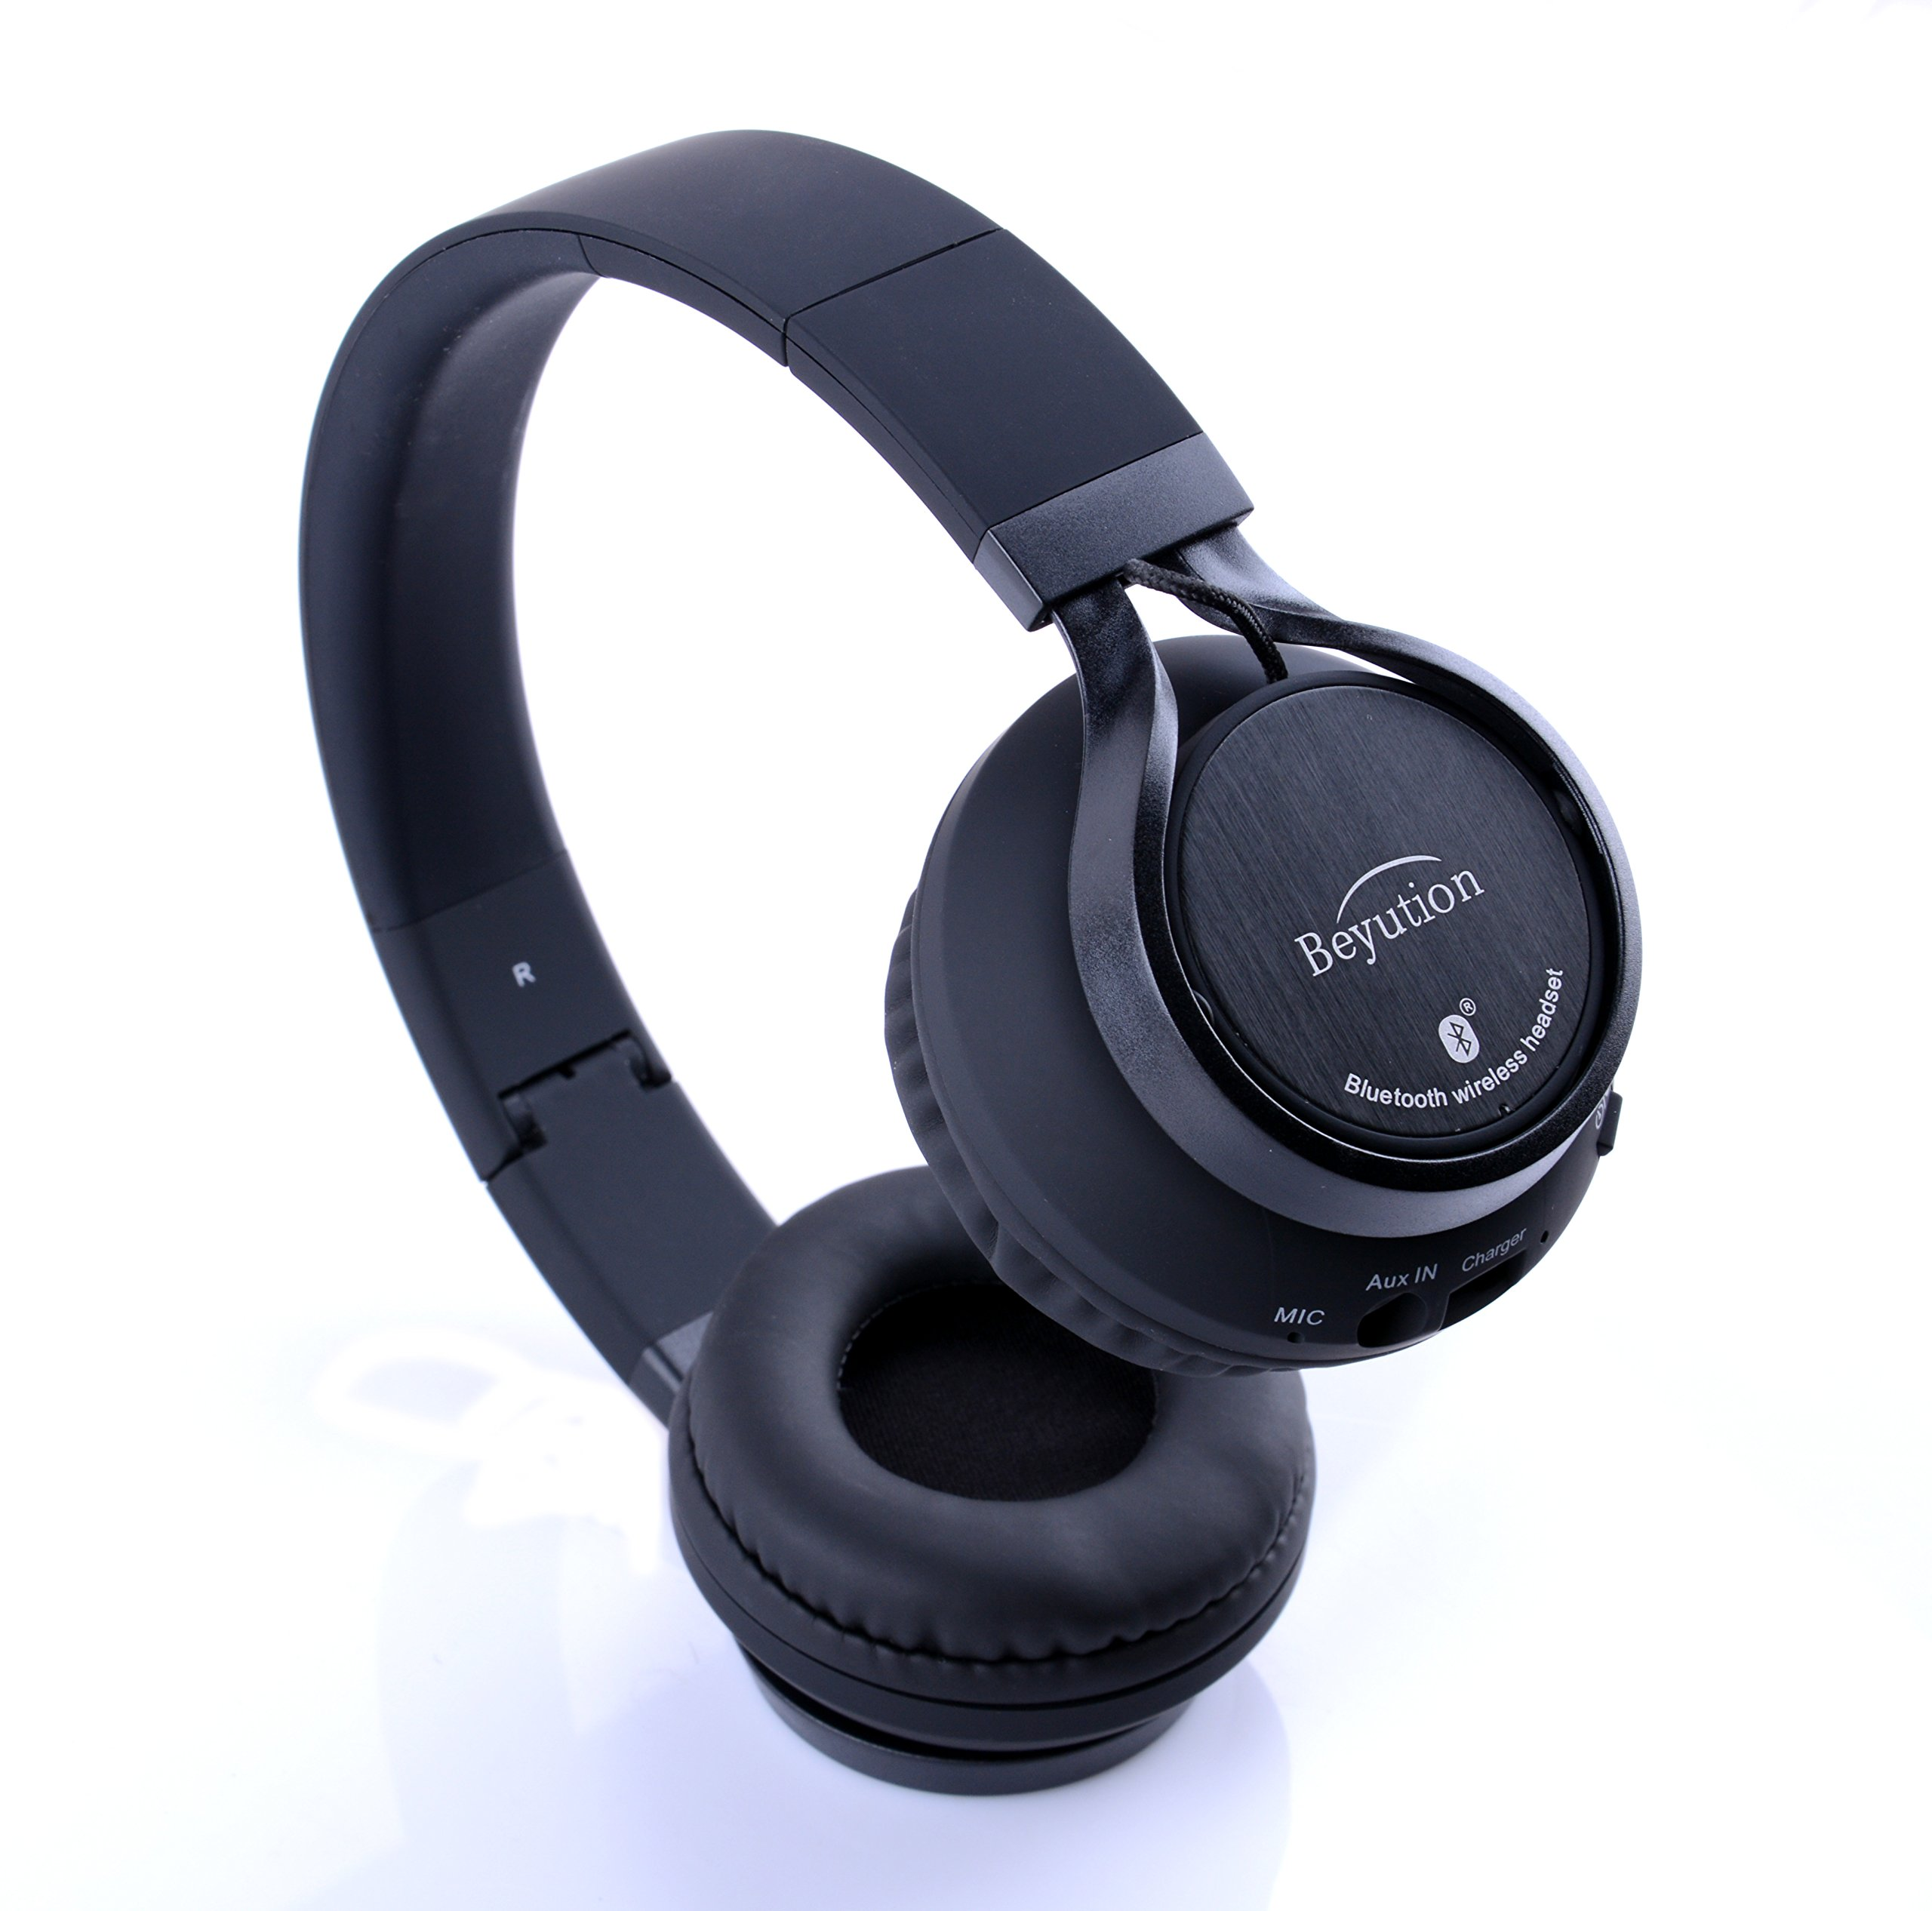 Beyution Black Metal Wireless Bluetooth Headsets Over Ear Bluetooth Headphones with Mic for iPhone 8 X Samsung Smart Phones and All Tablet Laptop with Bluetooth Funcstion (BT525-Black-Metal) by Beyution (Image #6)